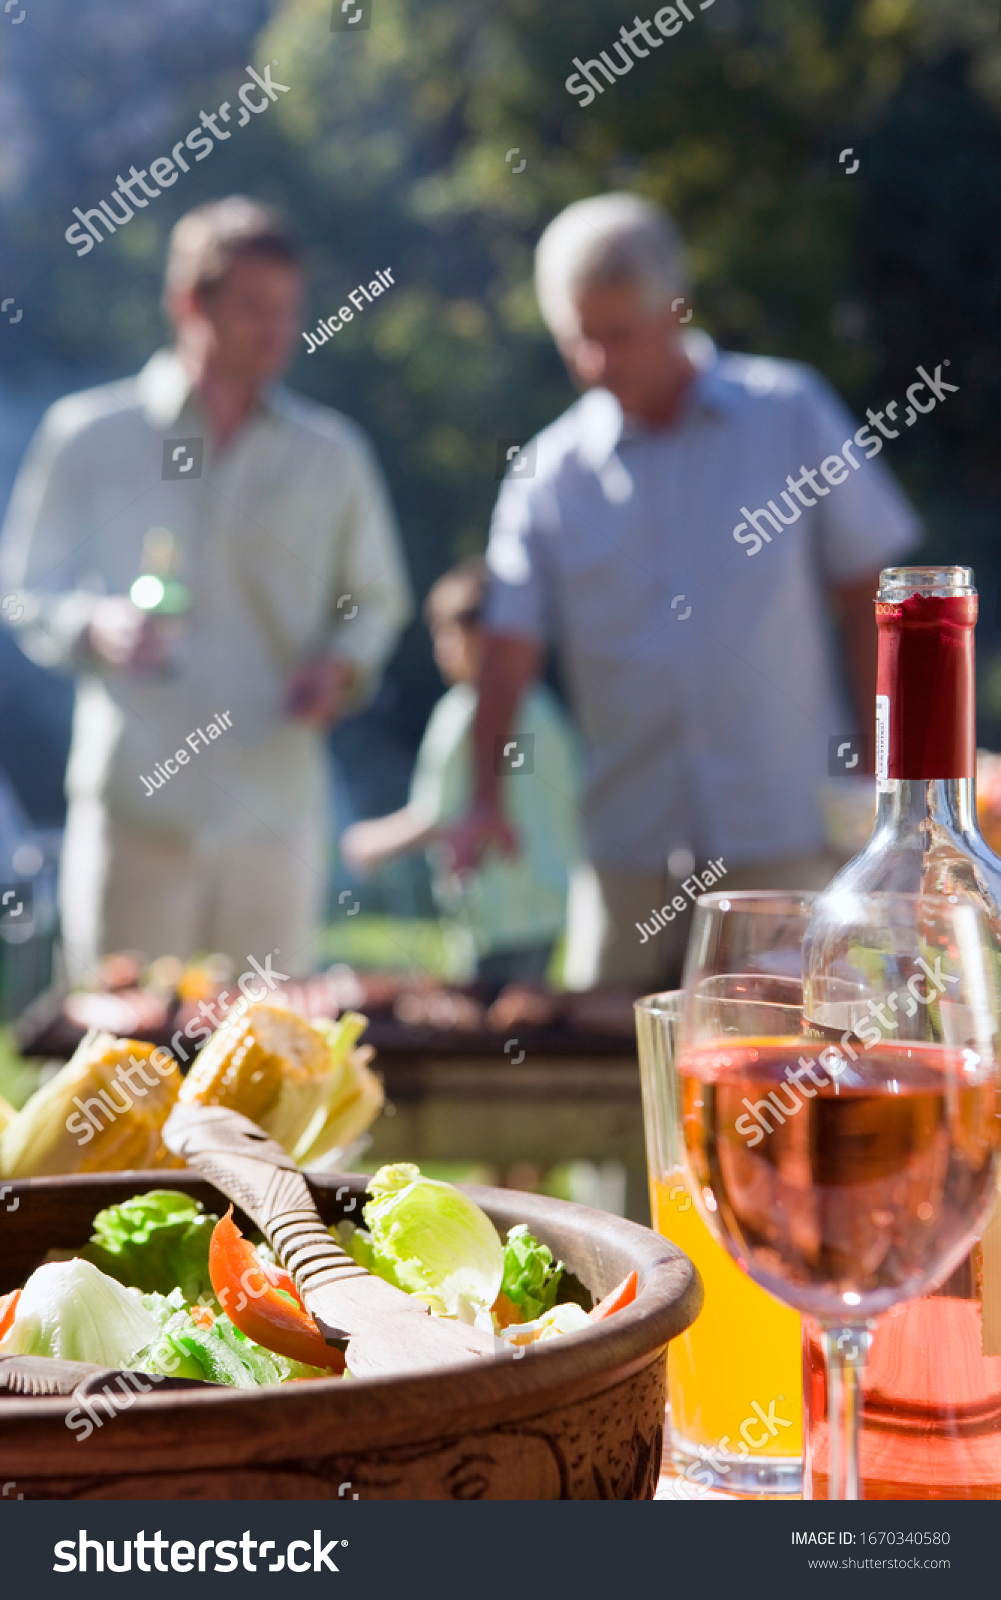 Men cooking food at family barbeque in garden with wine on table #1670340580